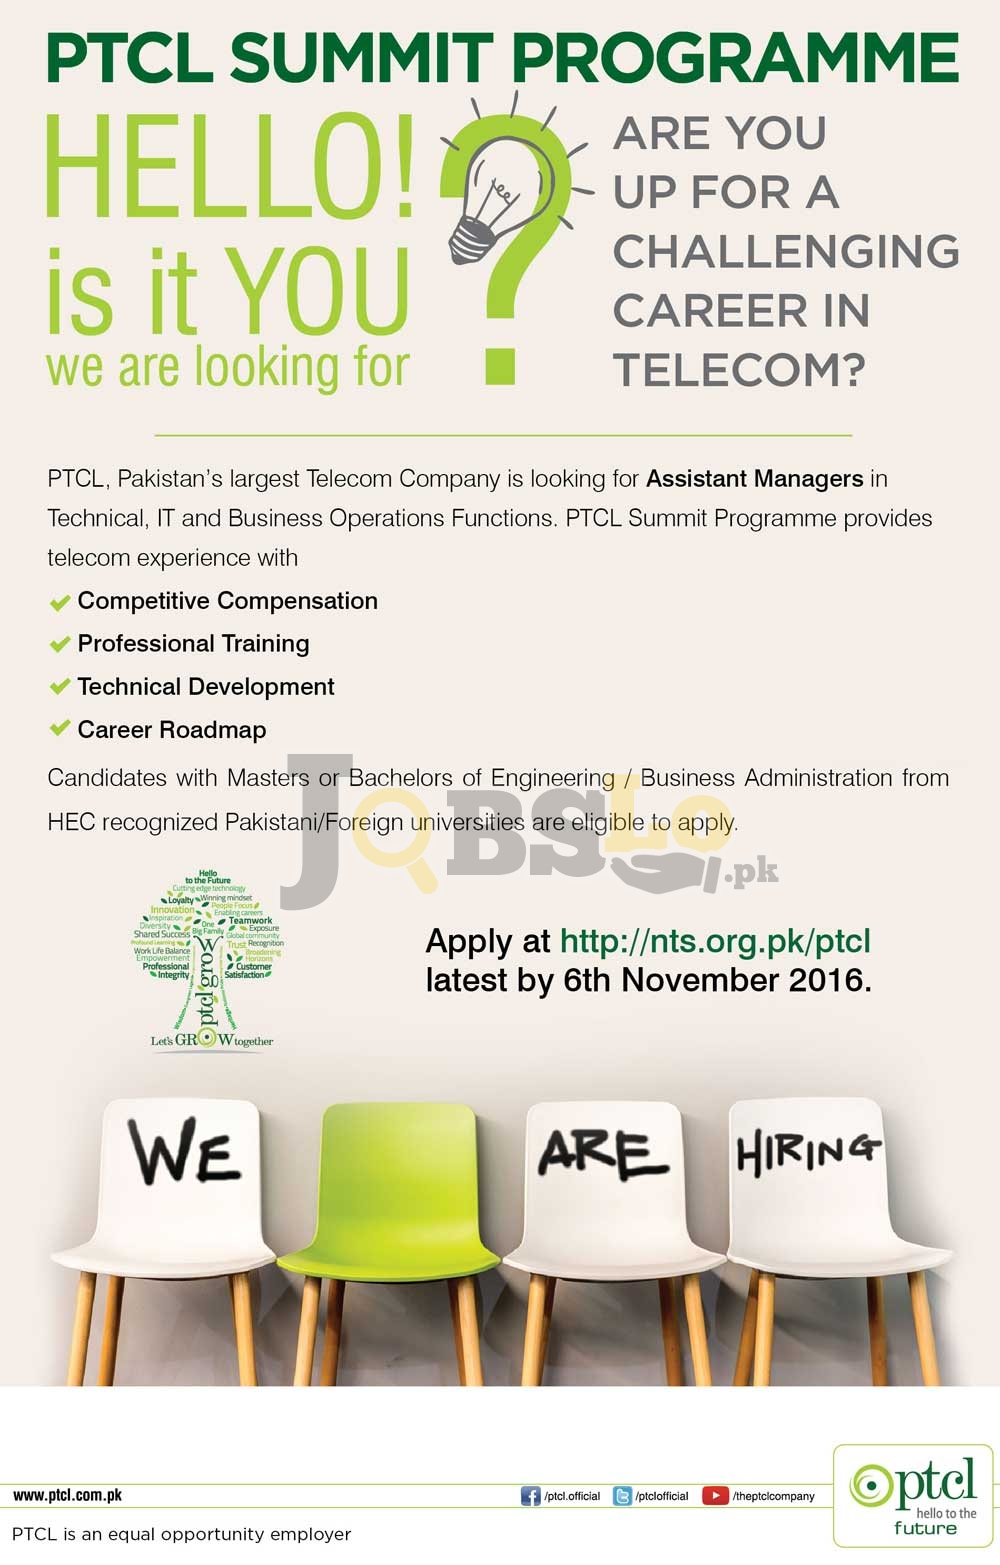 PTCL Summit Program Jobs